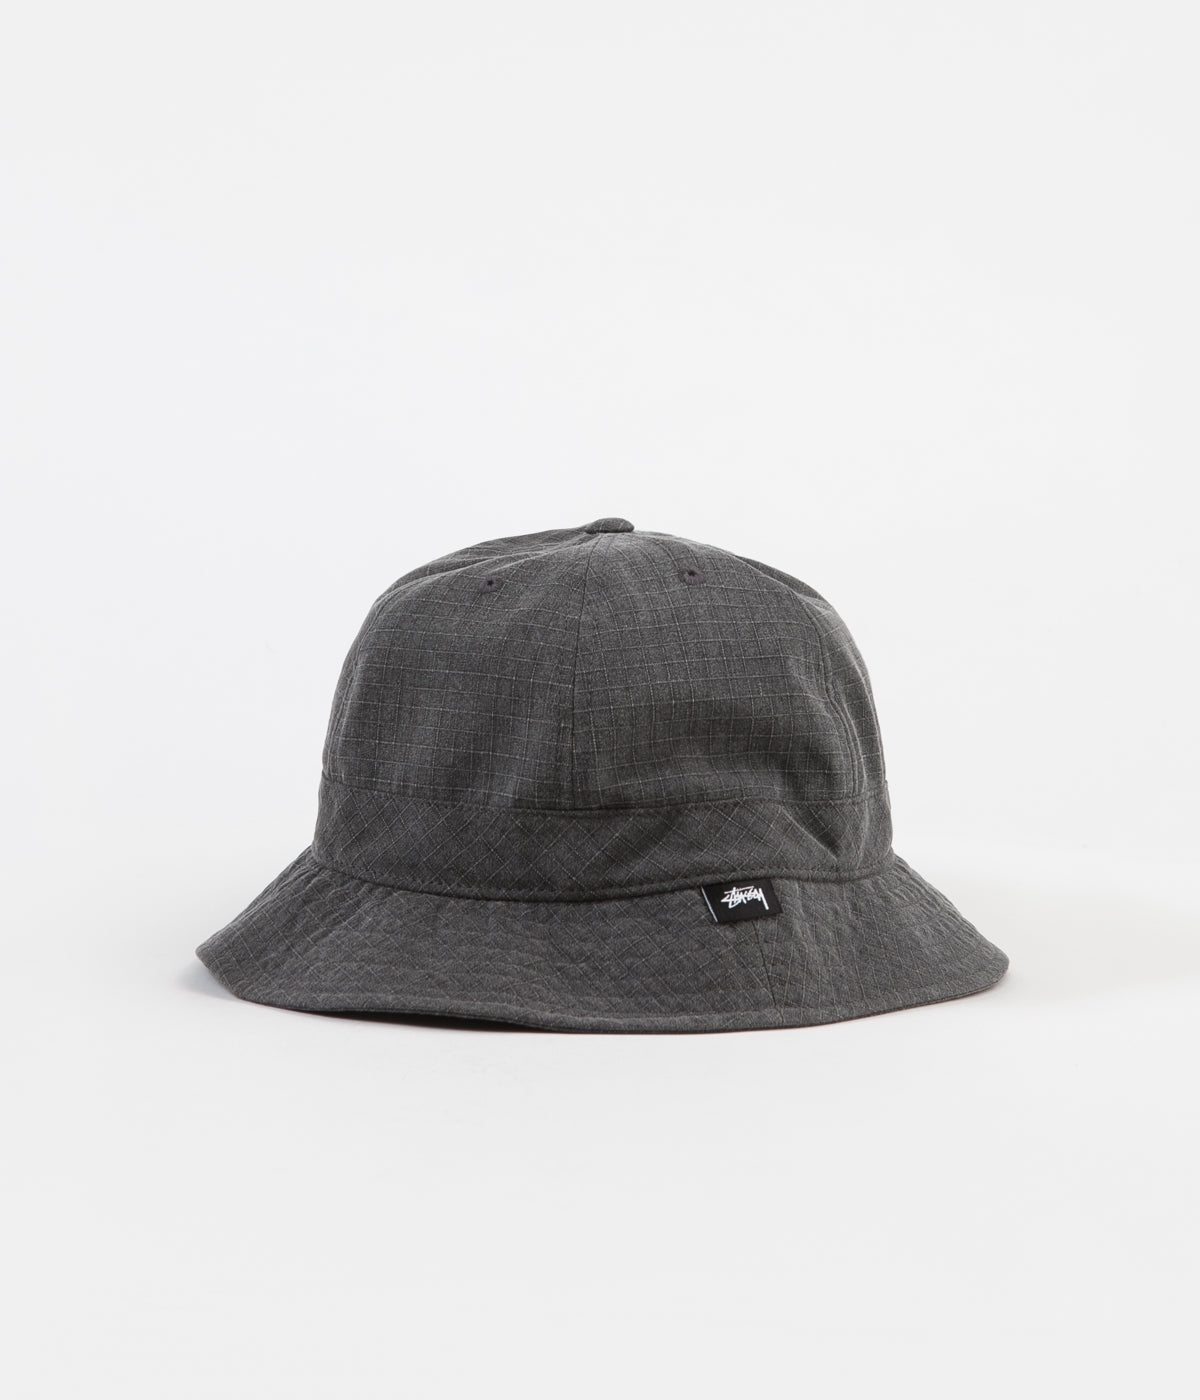 4a6bc42f Stussy Washed Ripstop Bell Bucket Hat - Black | Flatspot